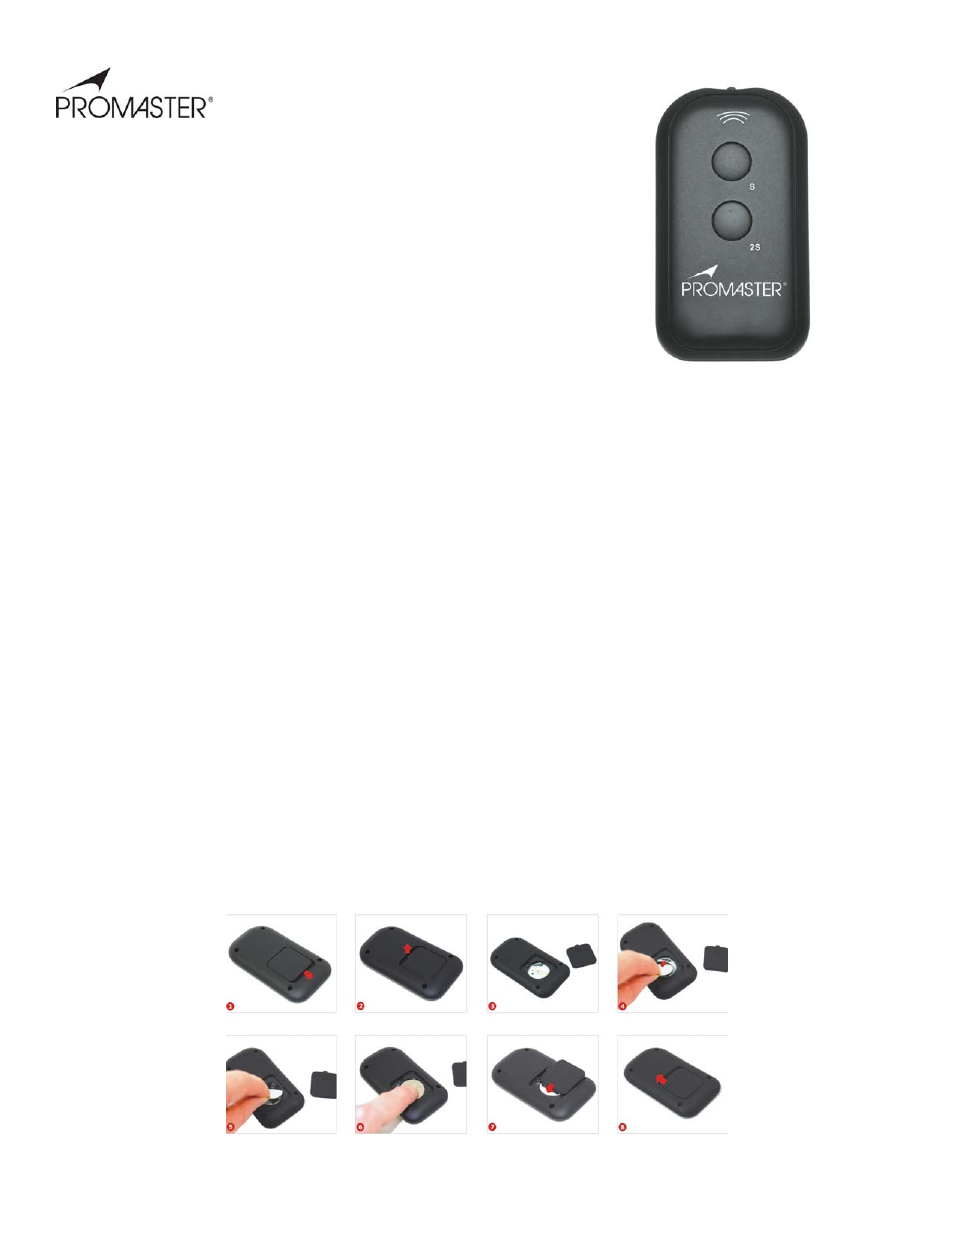 Sony Infrared Remote Control Rmt Dslr1 User Manual 2 Pages Infra Red For Nikon Camera